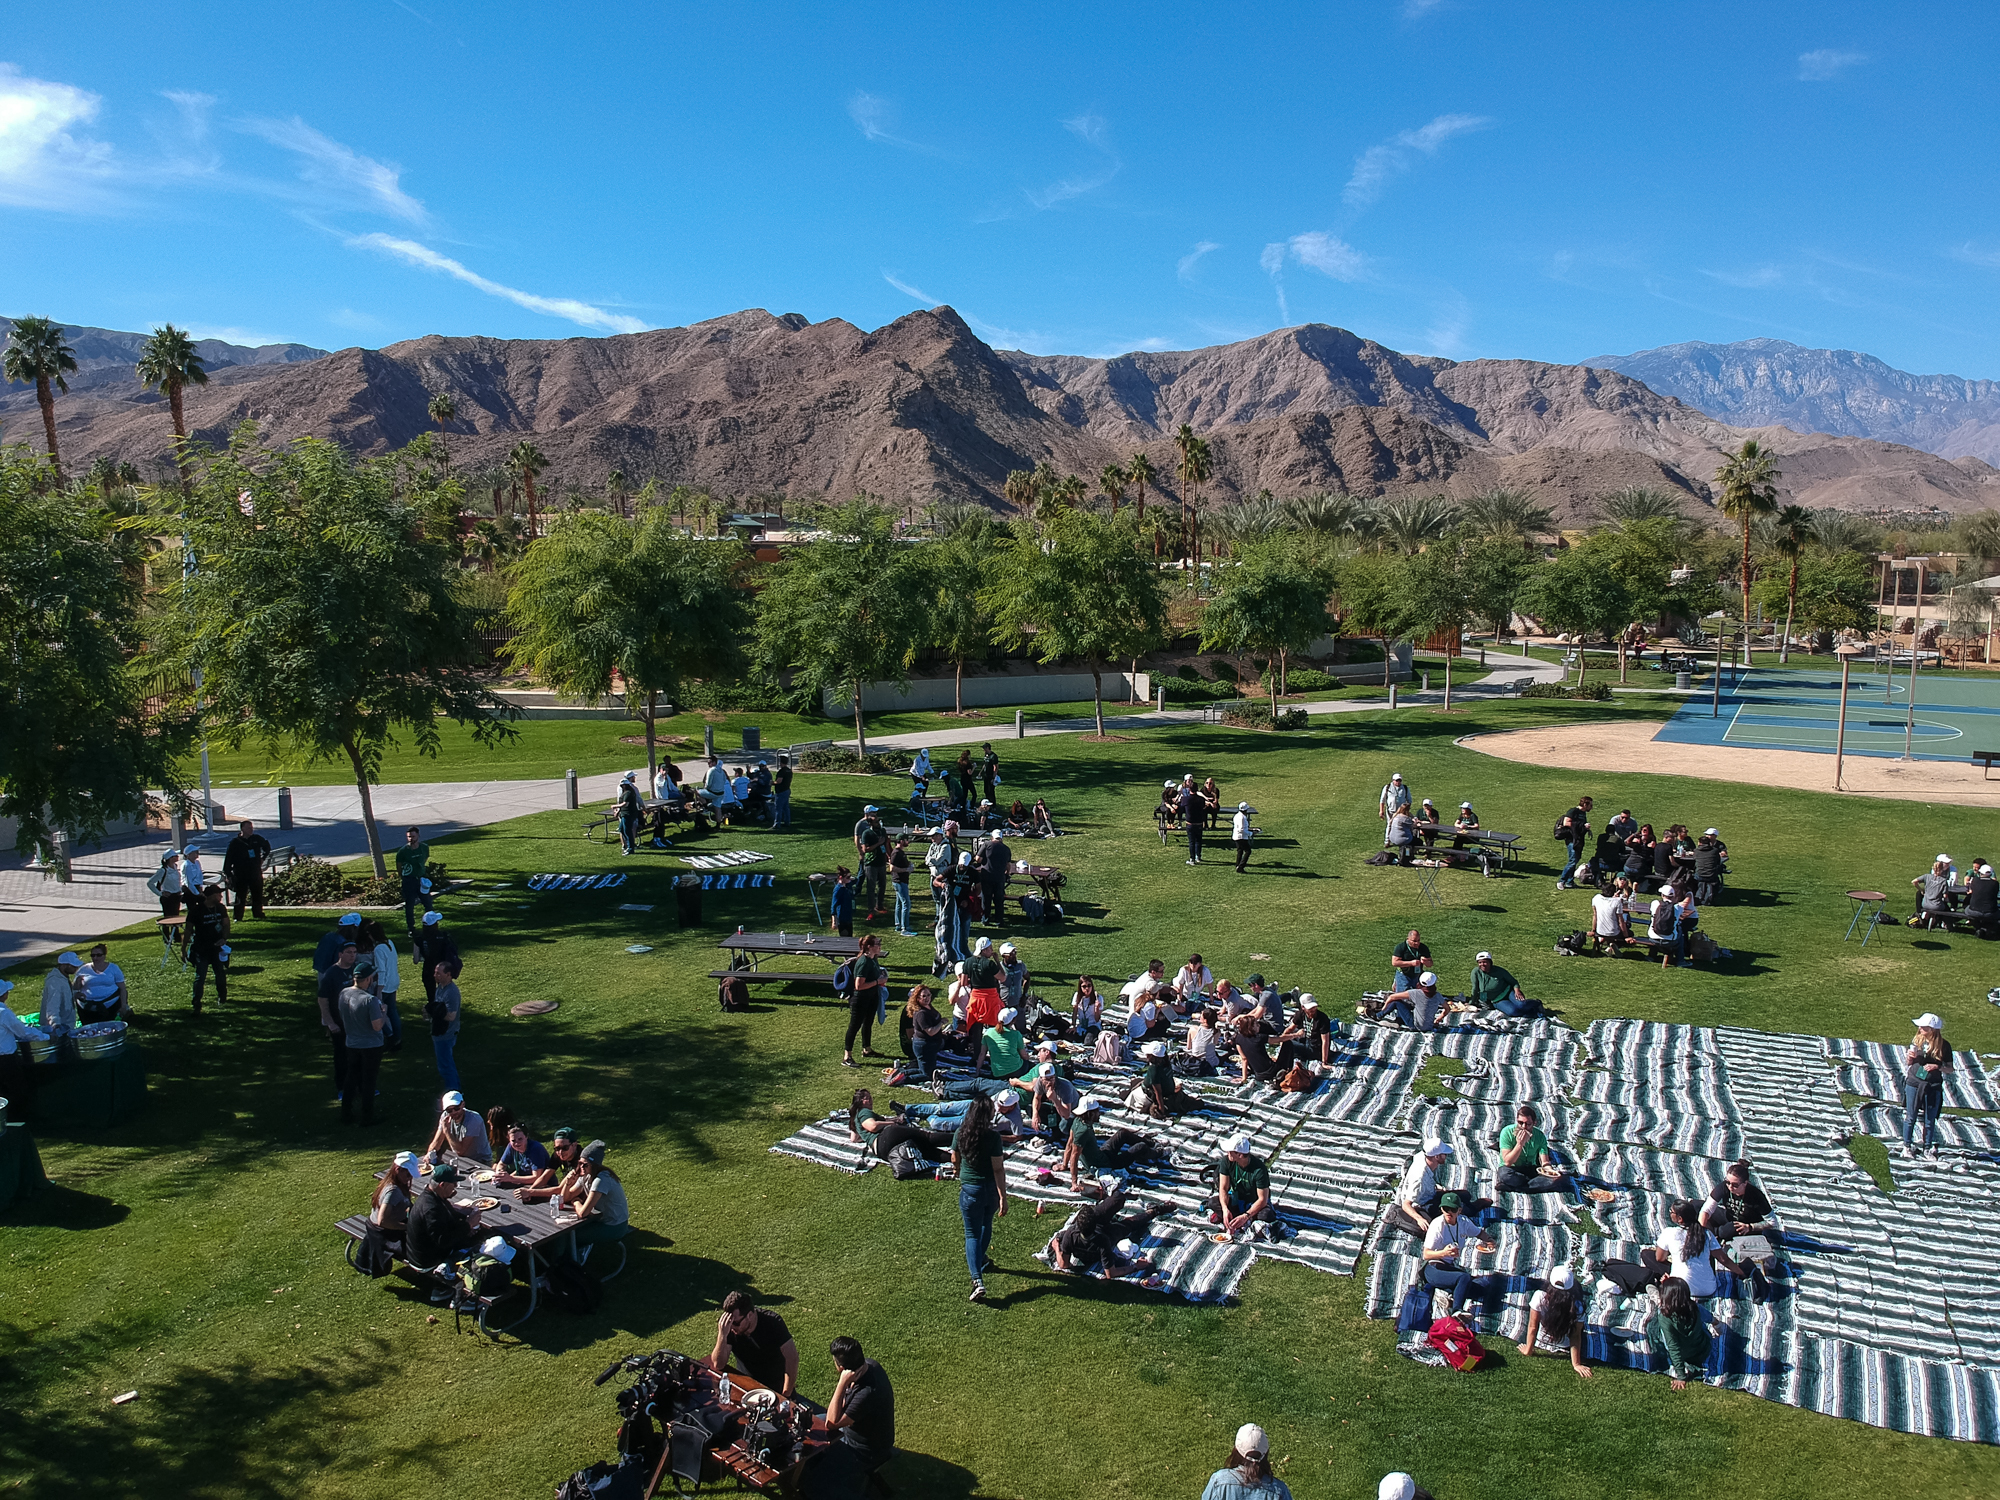 Sweetgreen employees eat lunch during a company retreat in Palm Springs, California on January 24, 2018.